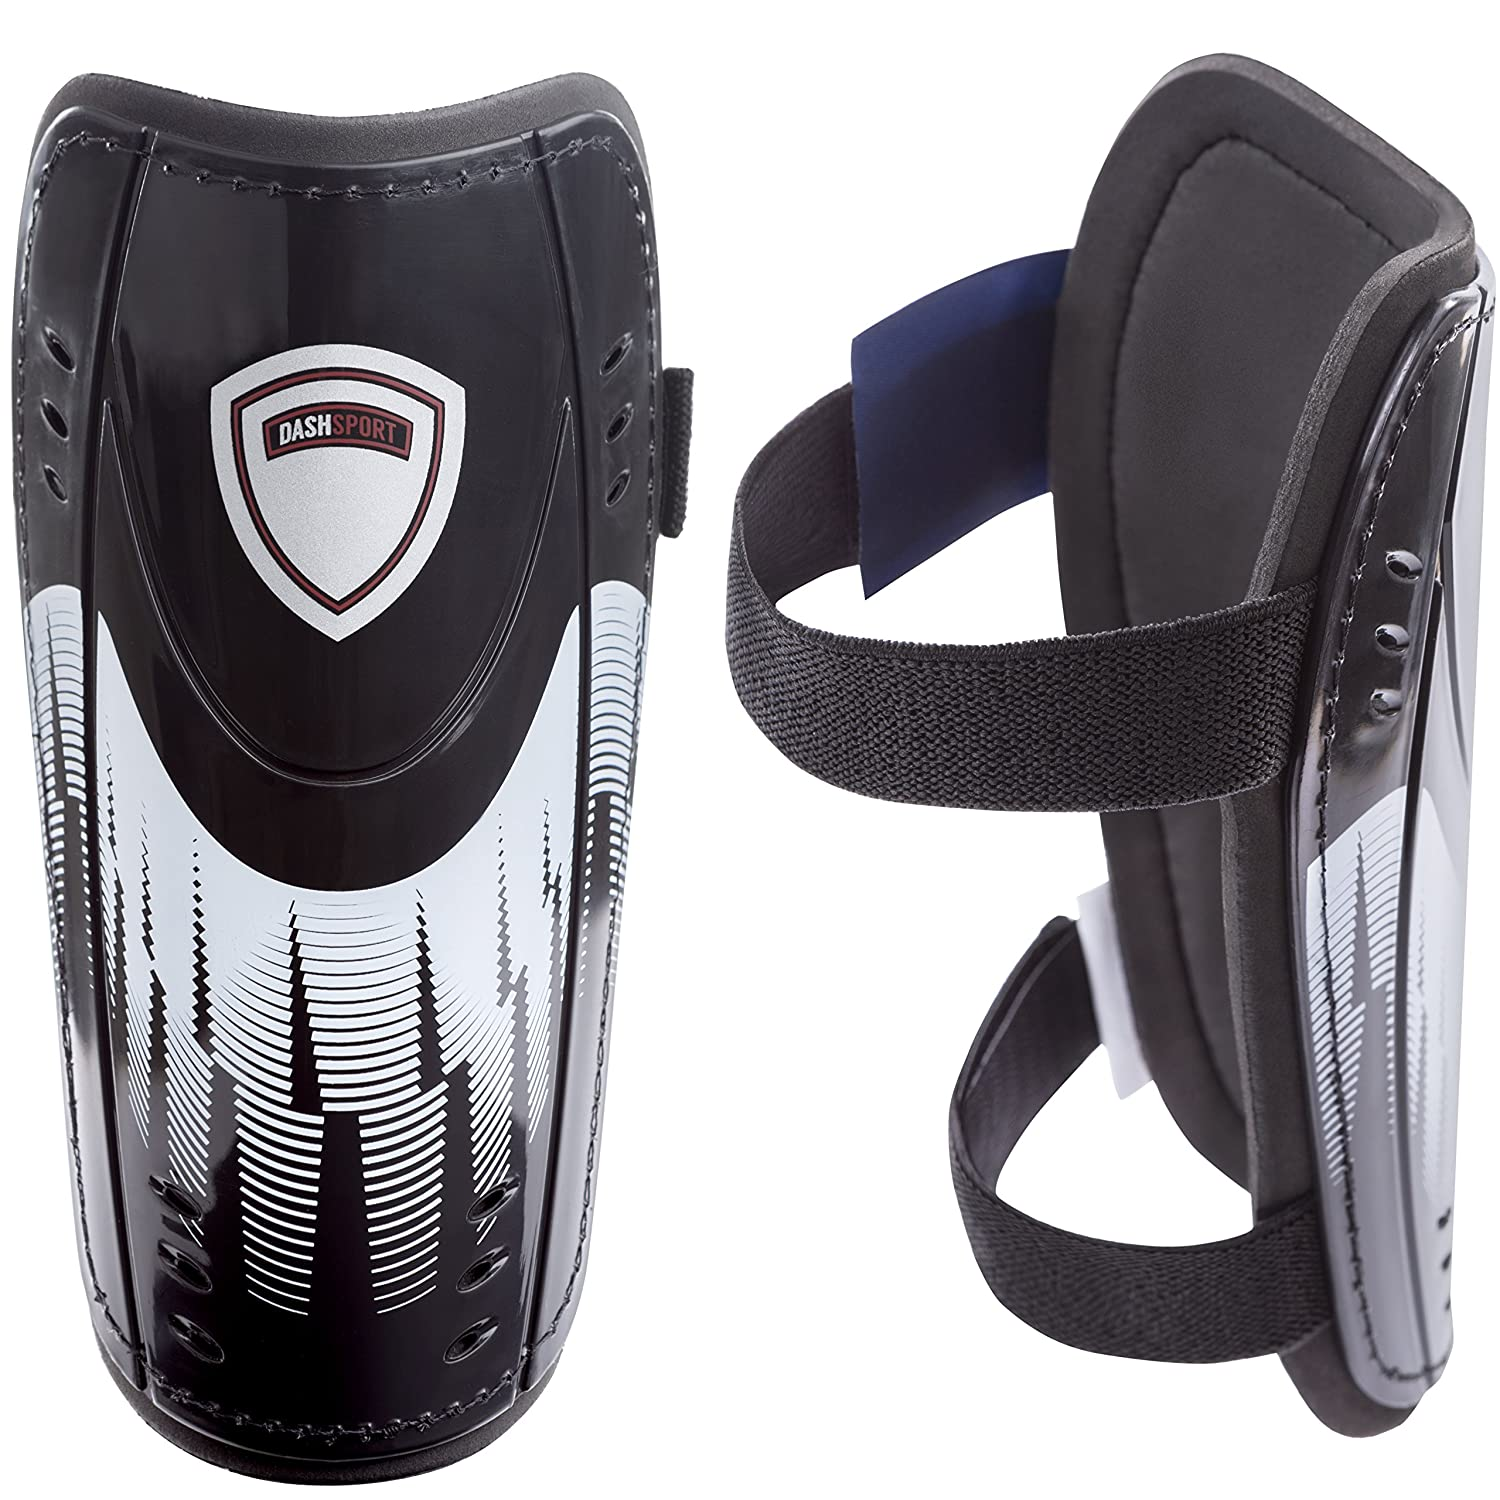 DashSport Soccer Shin Guards 5d09e6e4ac